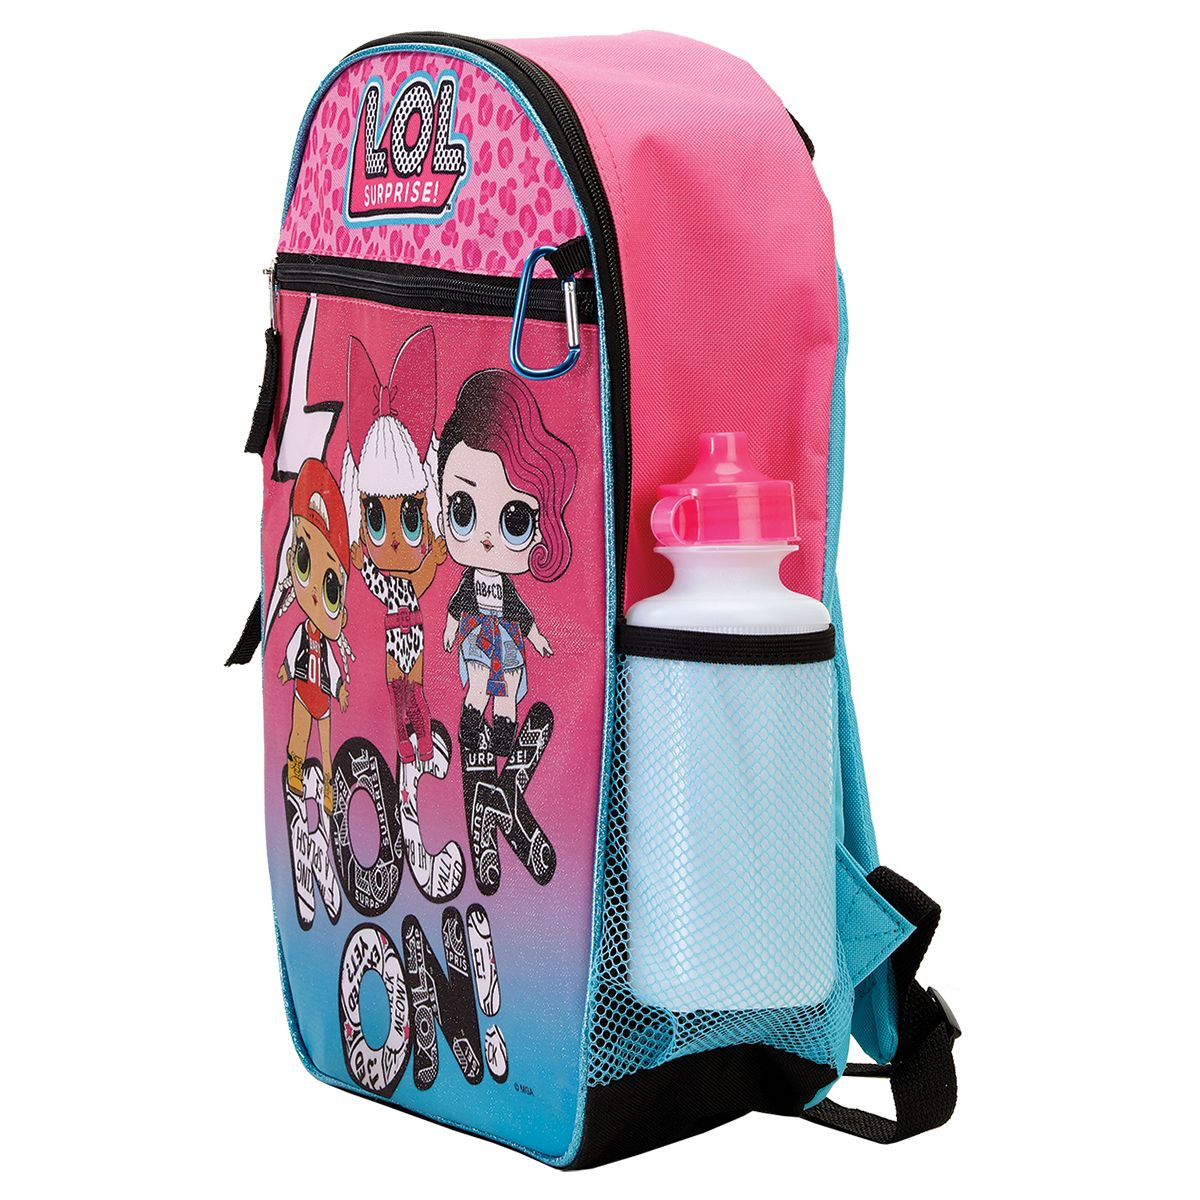 Personalized 5-in-1 LOL Surprise! Backpack Set